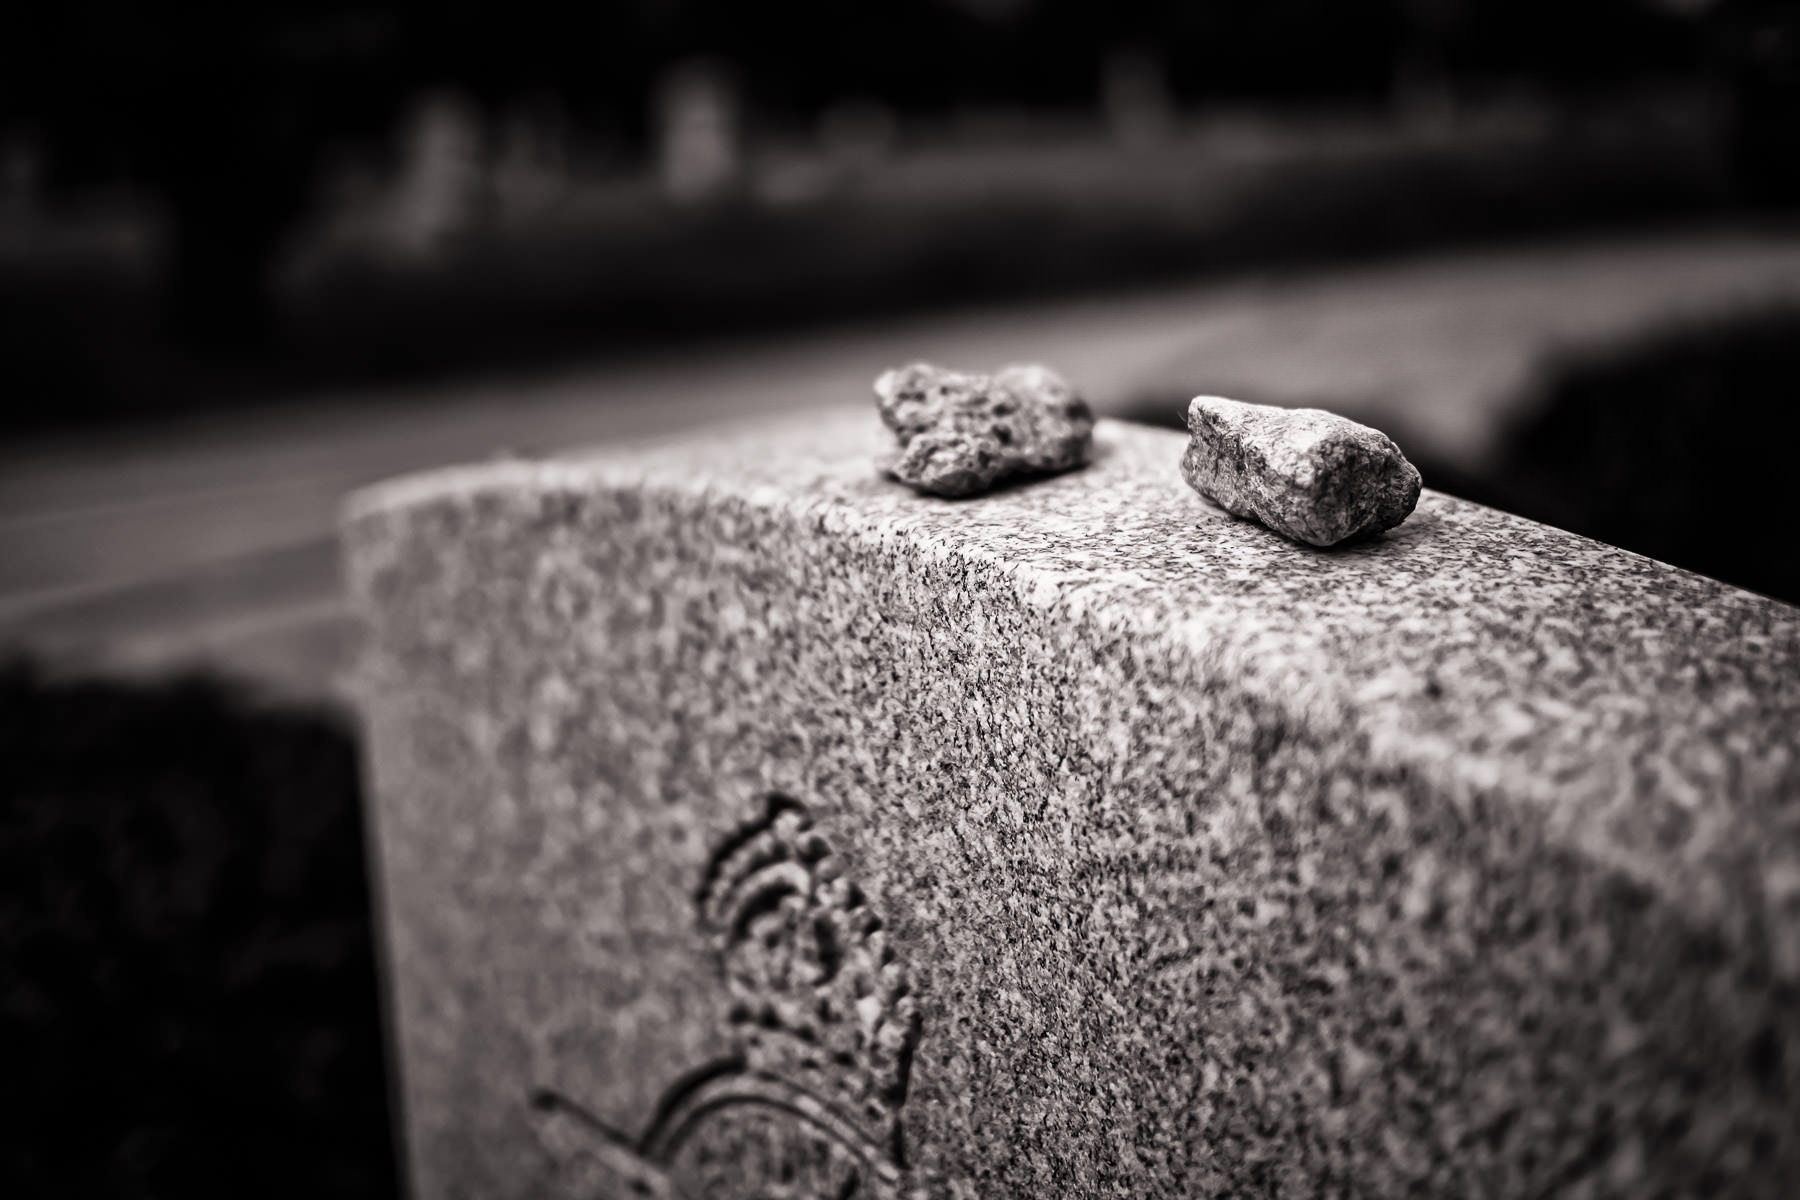 Visitation stones atop a Jewish aviator's grave at the Royal Air Force Cemetery at Oakland Memorial Park in Terrell, Texas. The RAF Cemetery holds the remains of 20 aviators who died while training at the nearby No. 1 British Flying Training School during World War II.